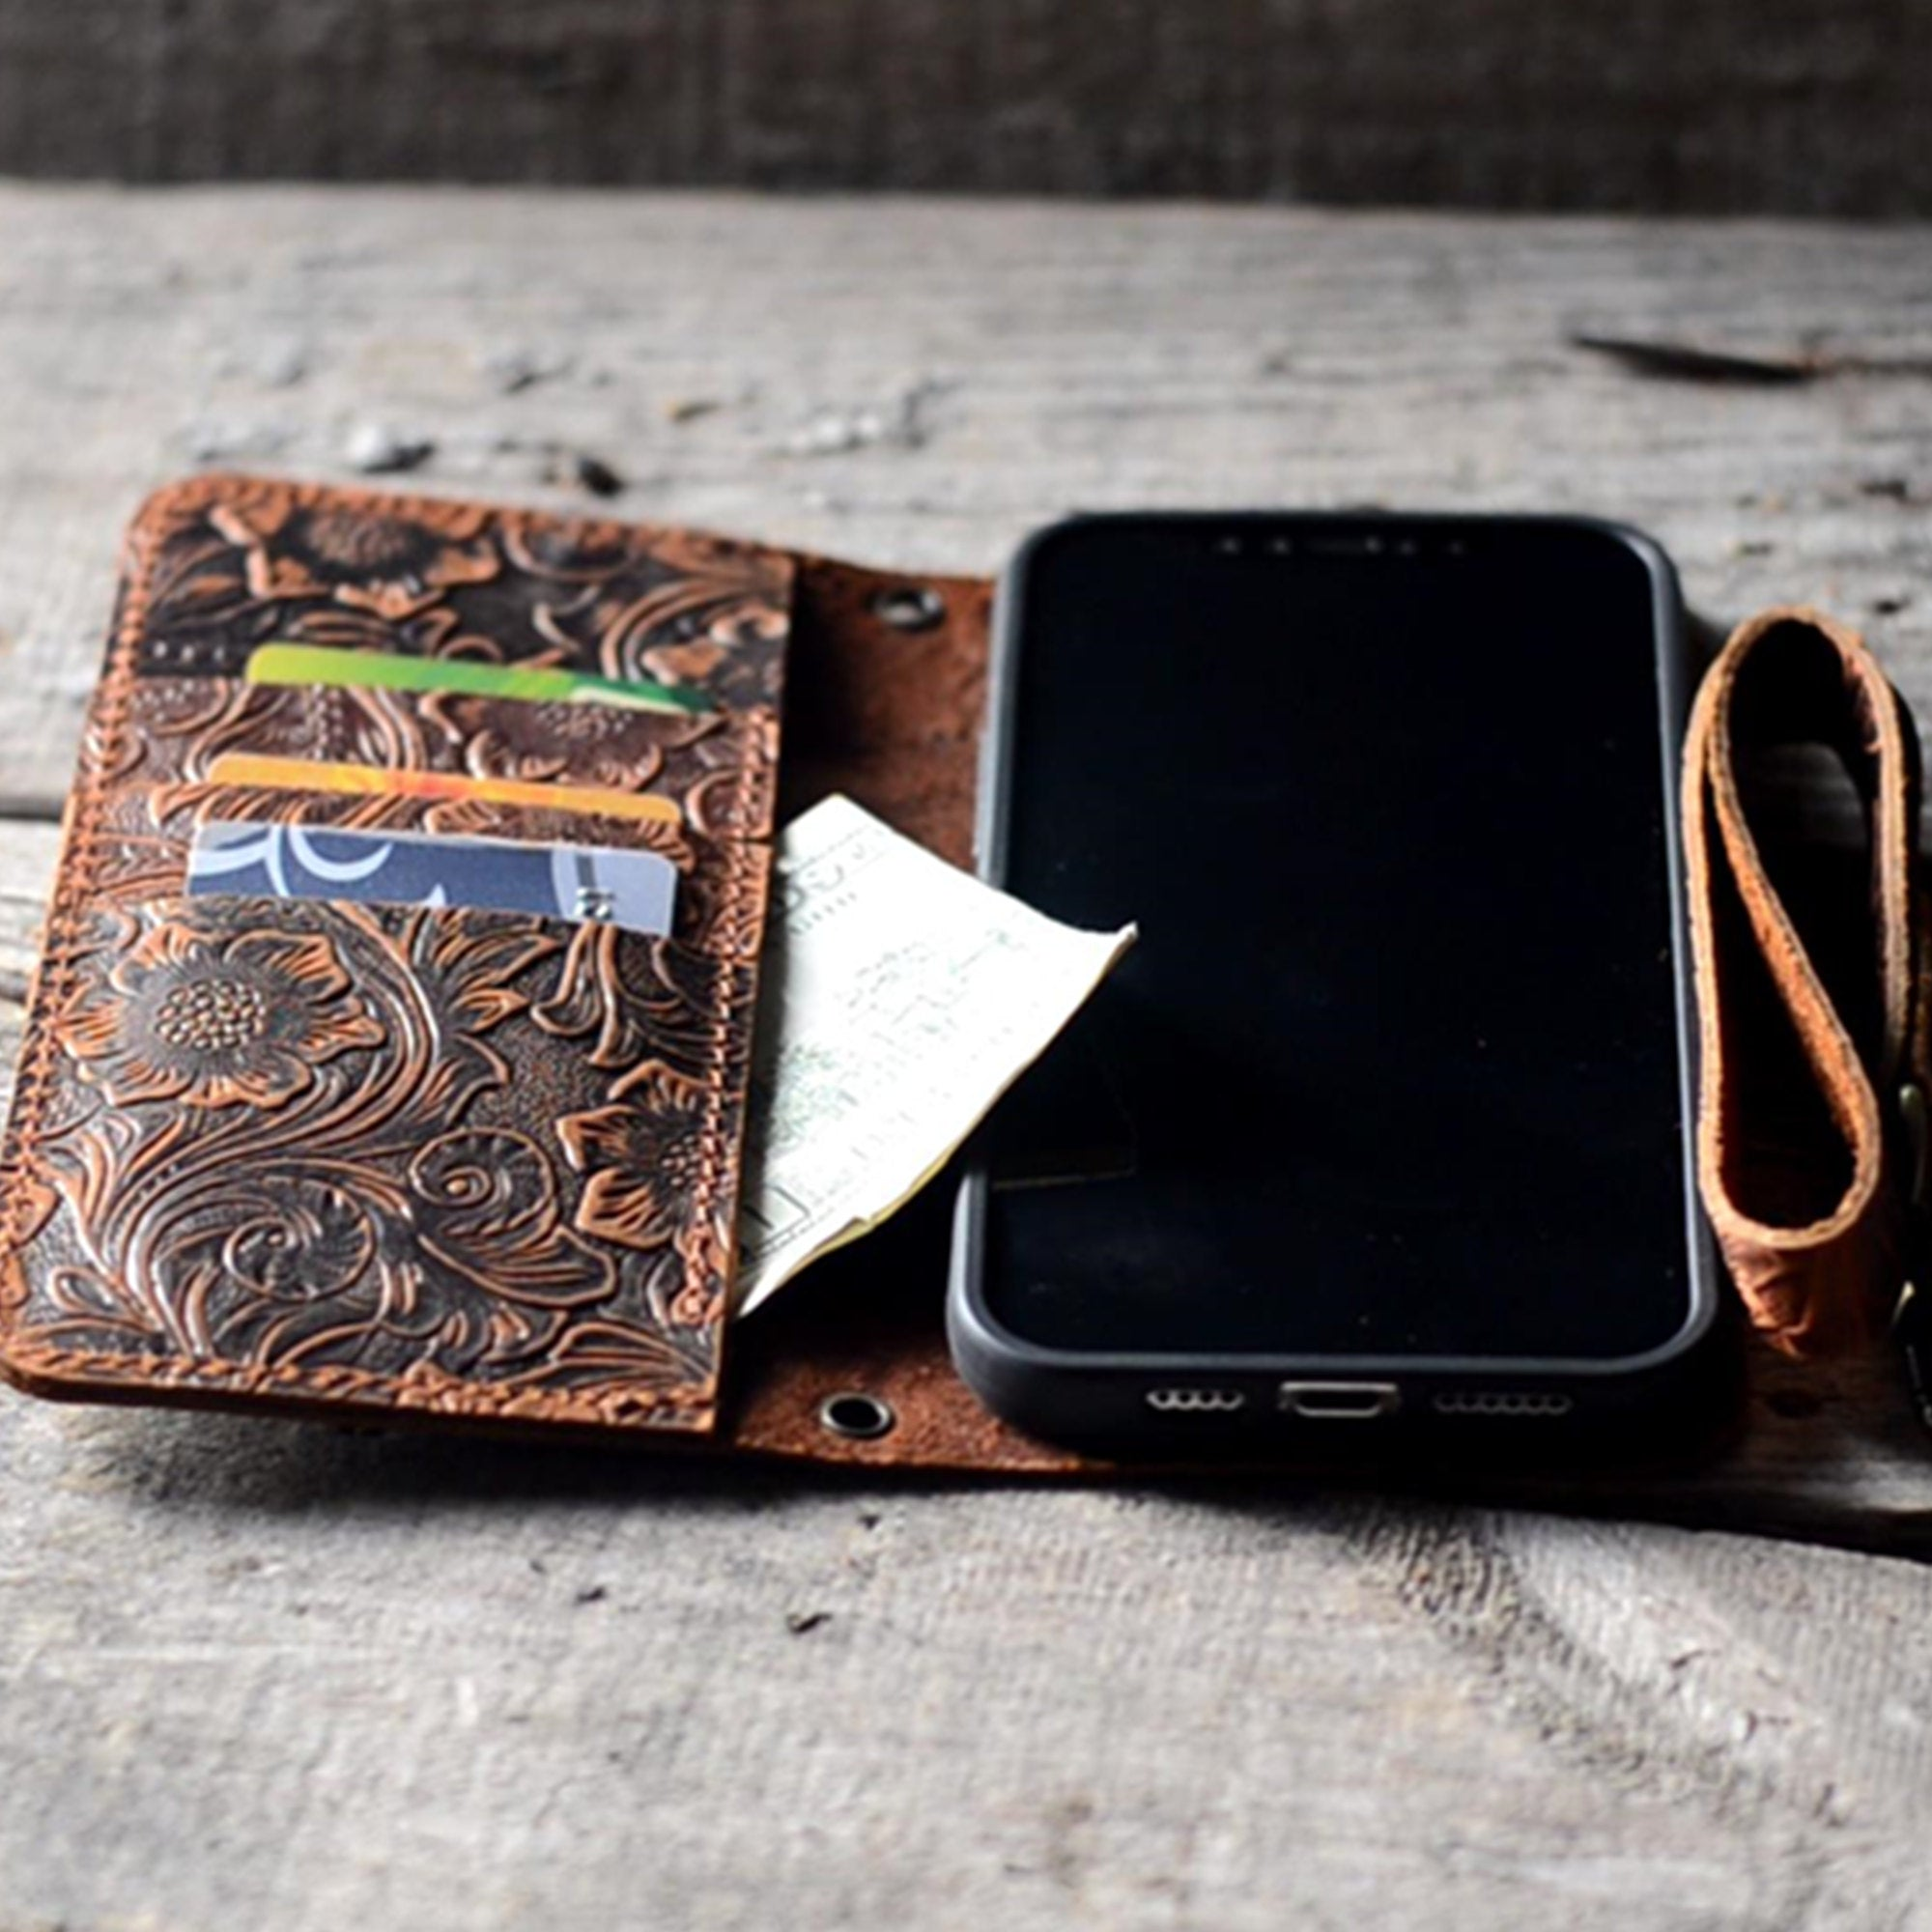 JJNUSA Genuine leather Vintage Wallet for Iphone 12 pro max / 12 Mini / 12 pro